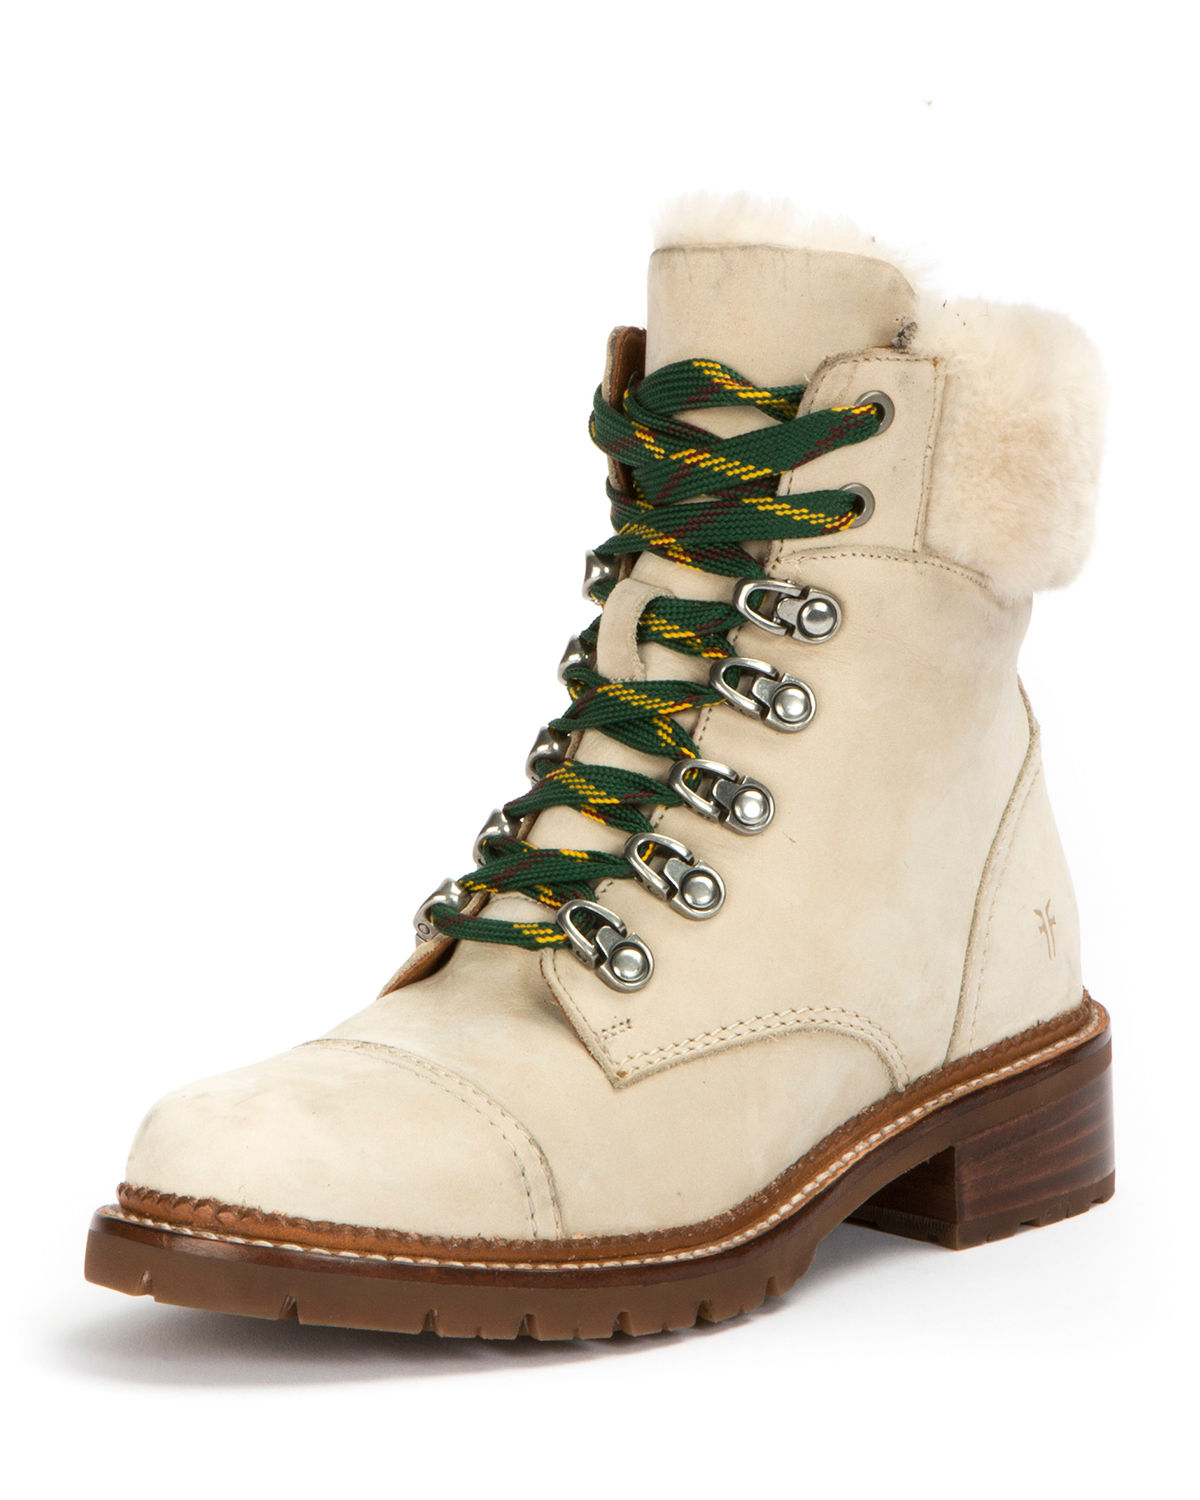 Frye Boots SAMANTHA BRUSHED HIKER BOOT